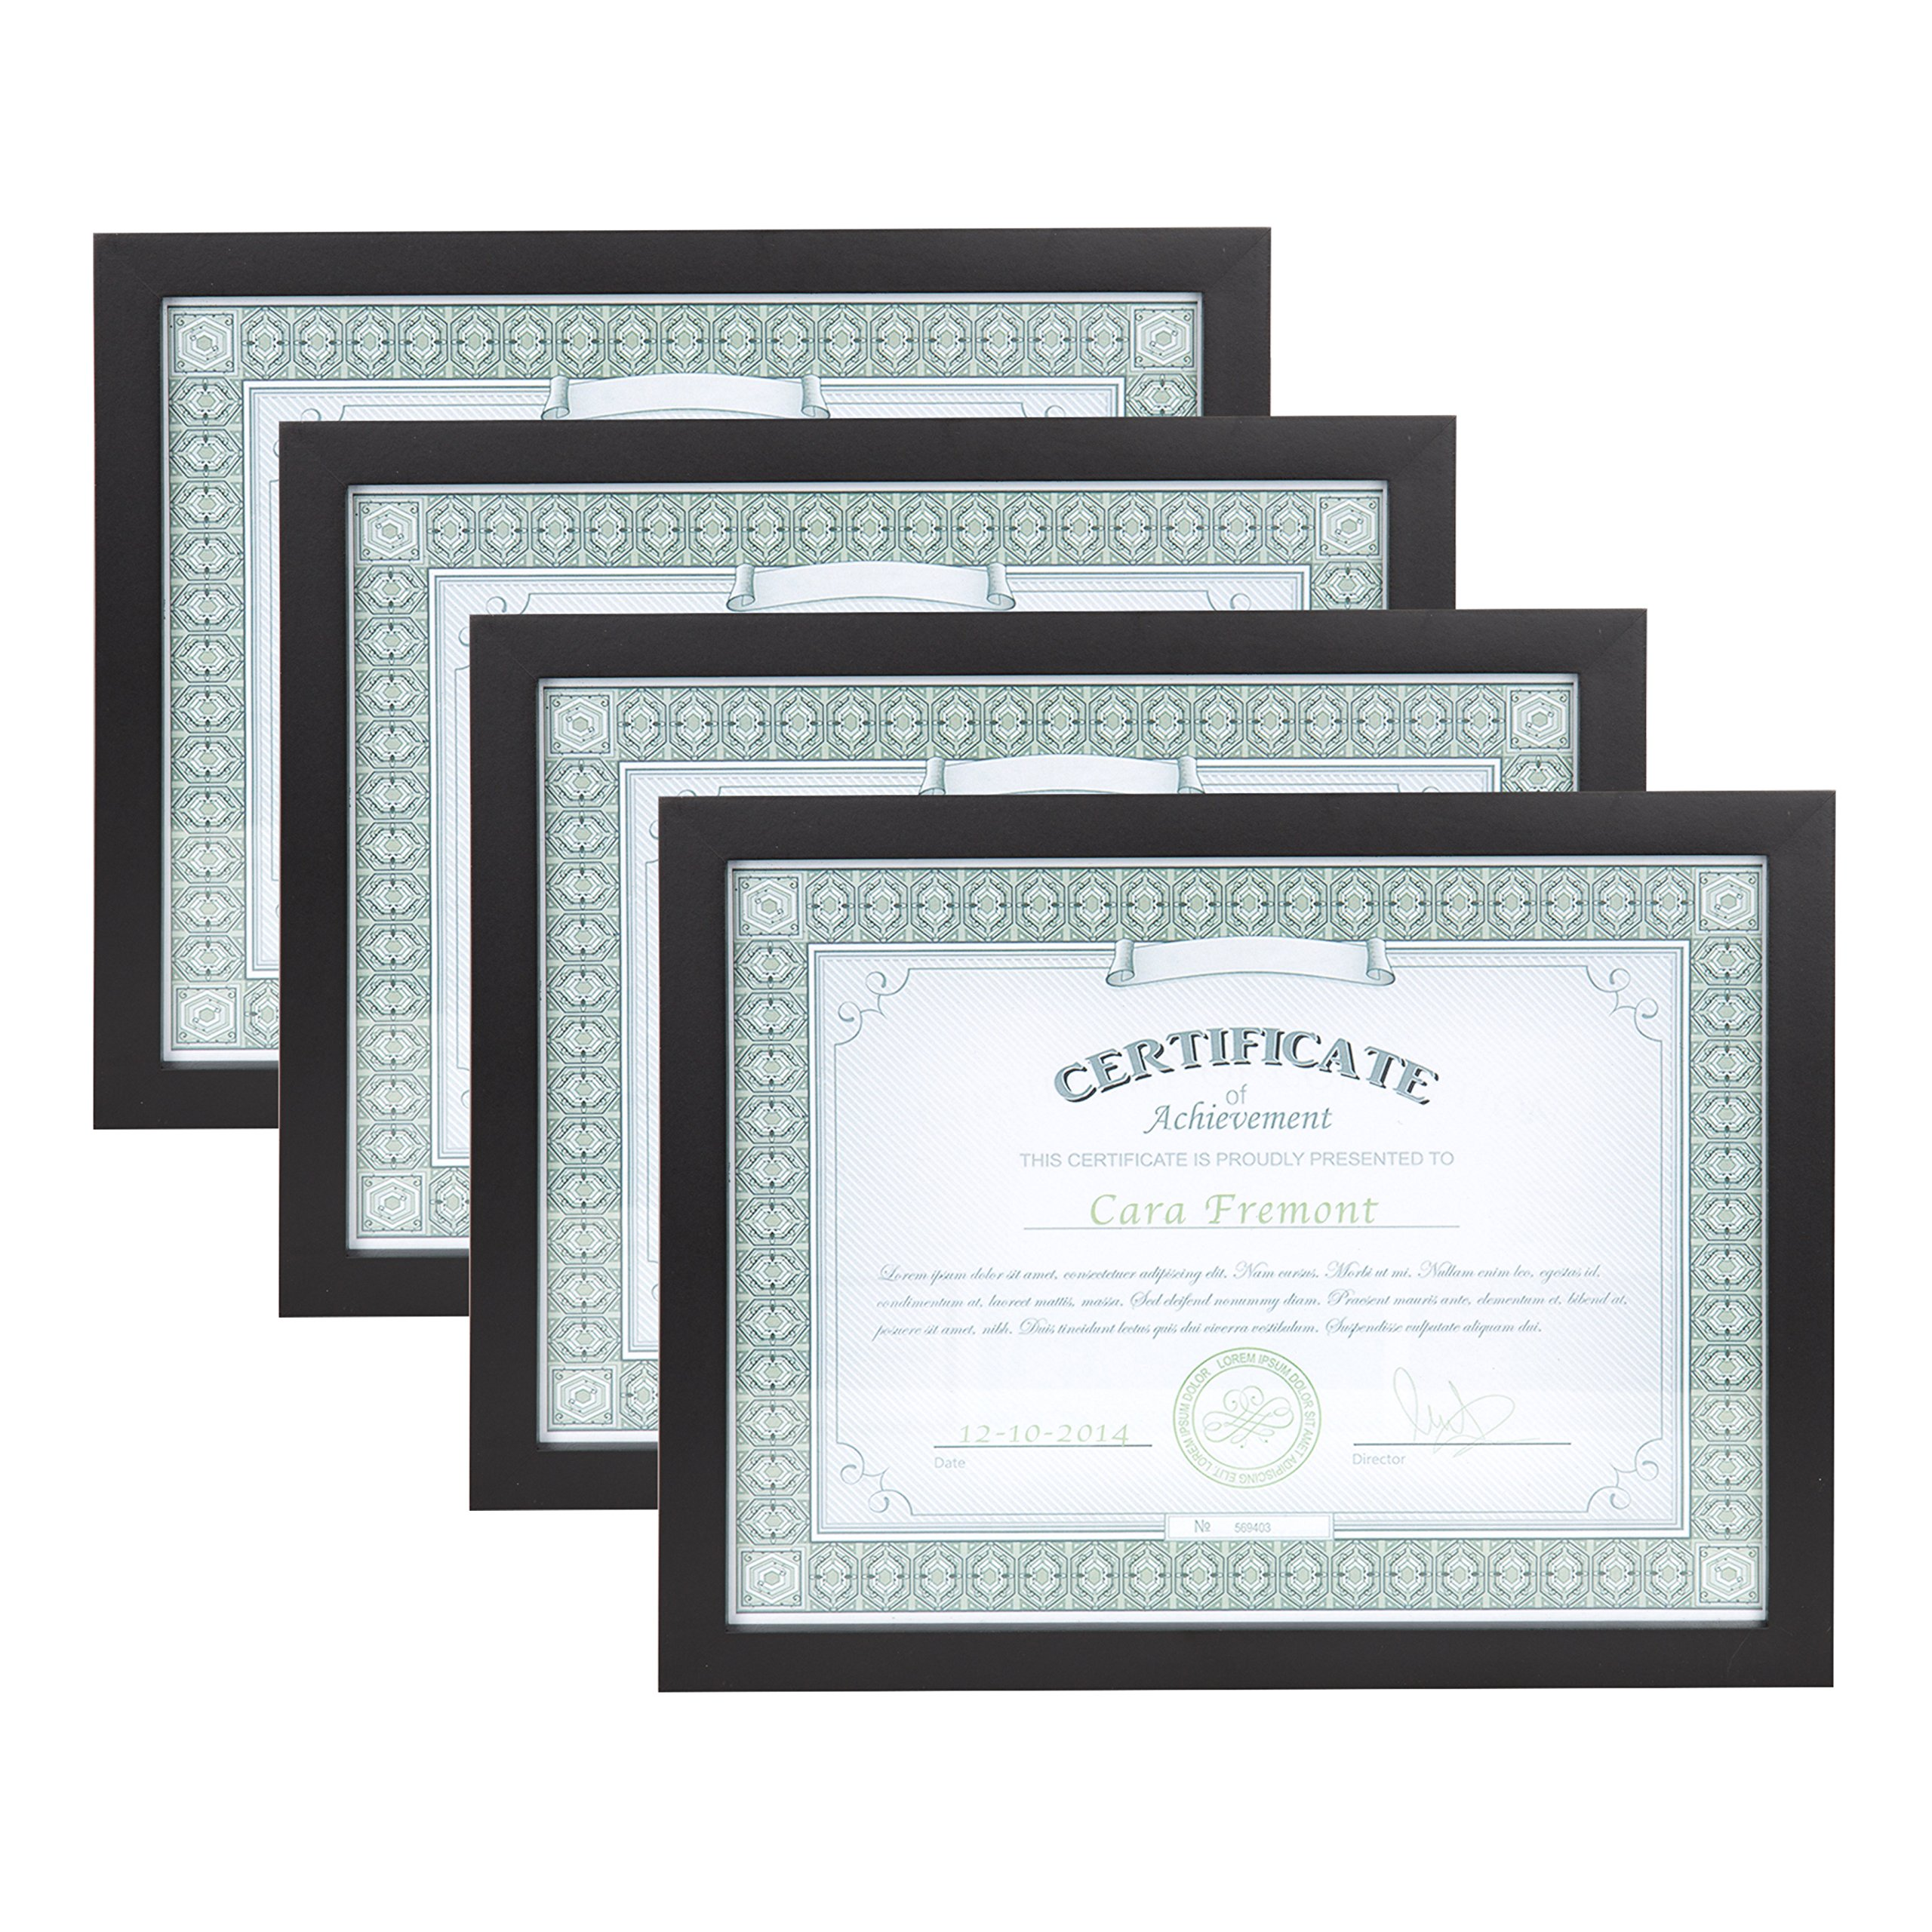 DesignOvation Gallery 8.5x11 Black Wood Document Picture Frame, Set of 4 by DesignOvation